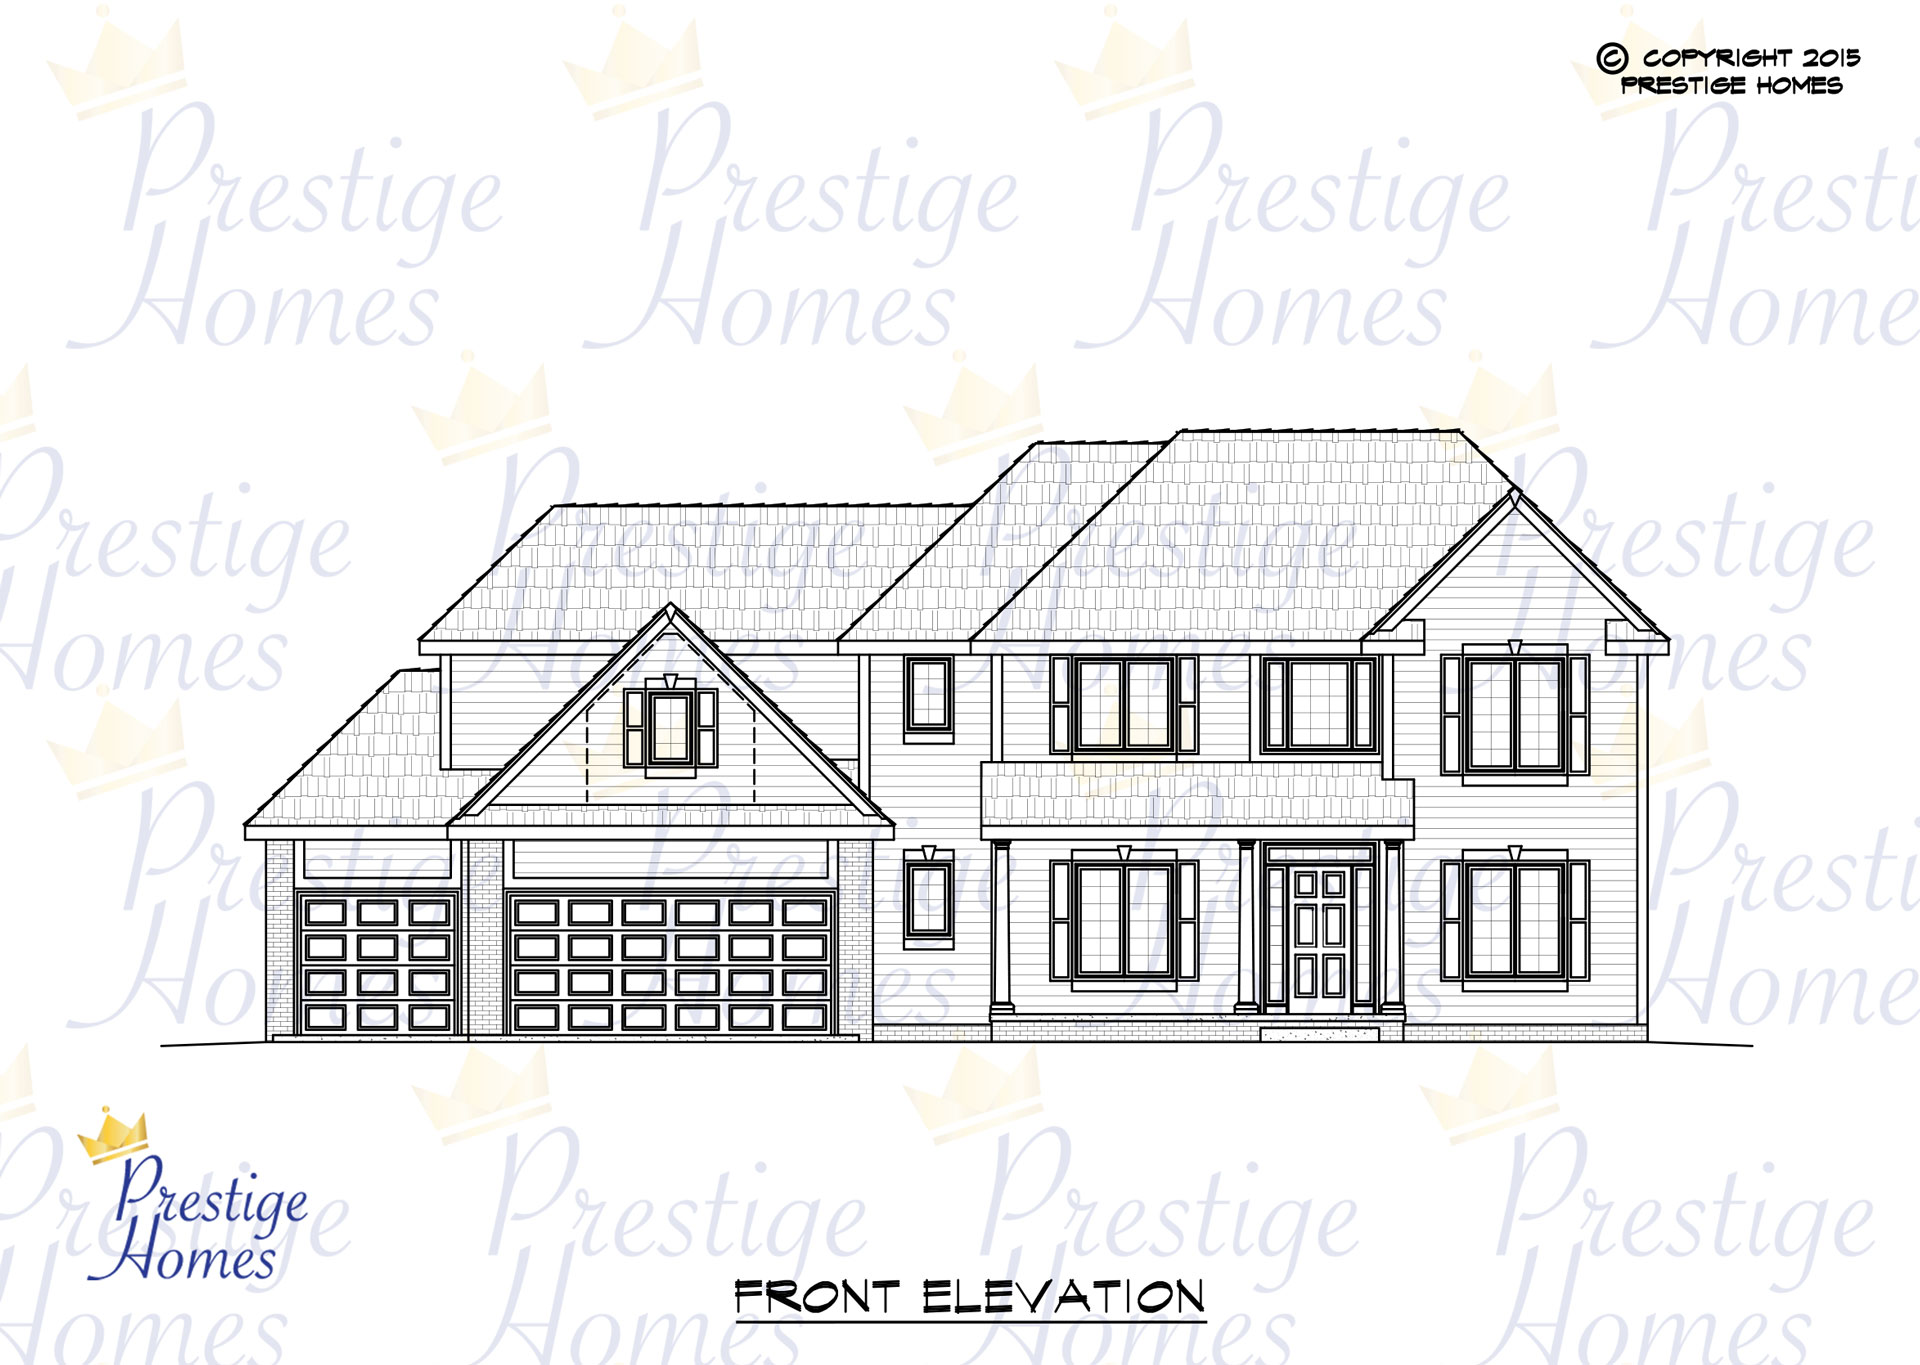 Prestige Homes - Floor Plan - Mitchel - Original - Front